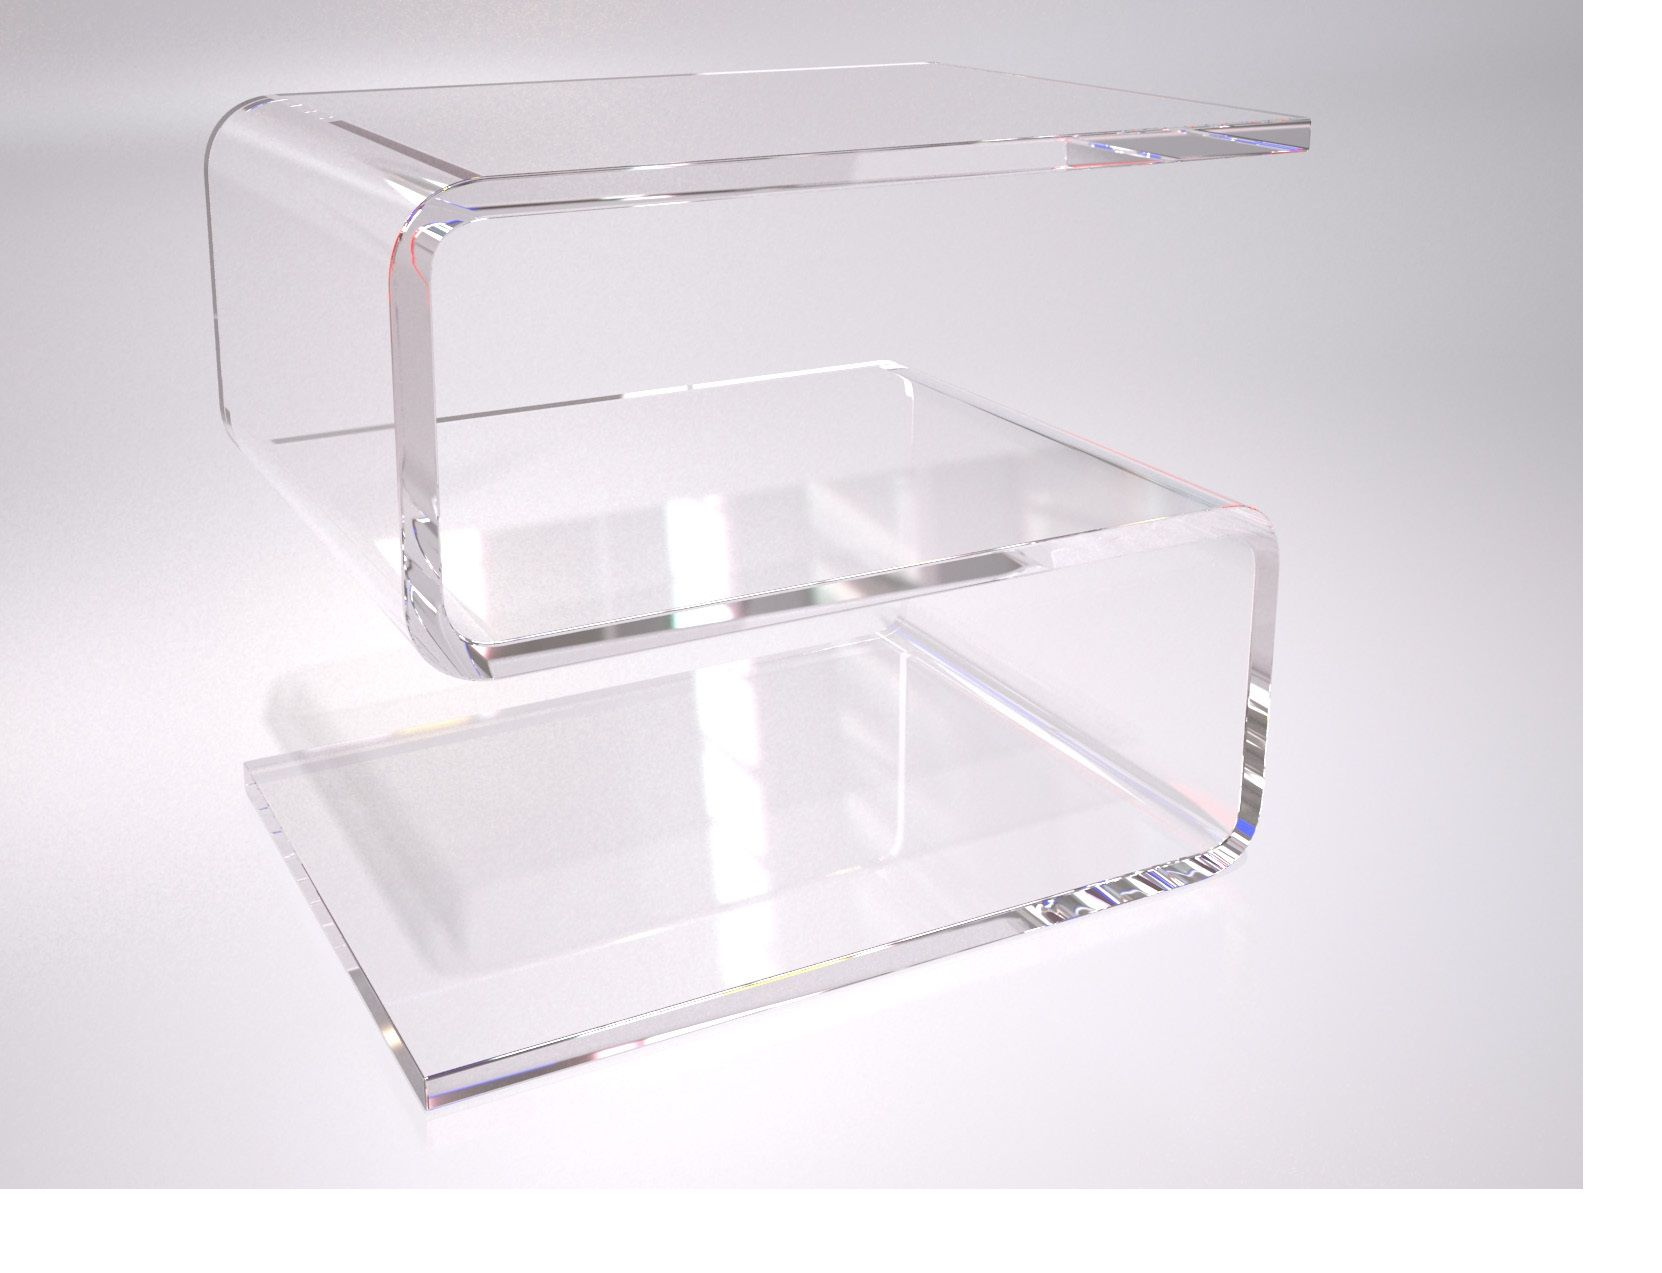 Table Plexiglas Transparent This S Shaped Living And Bed Room Side Table Manufactured In One